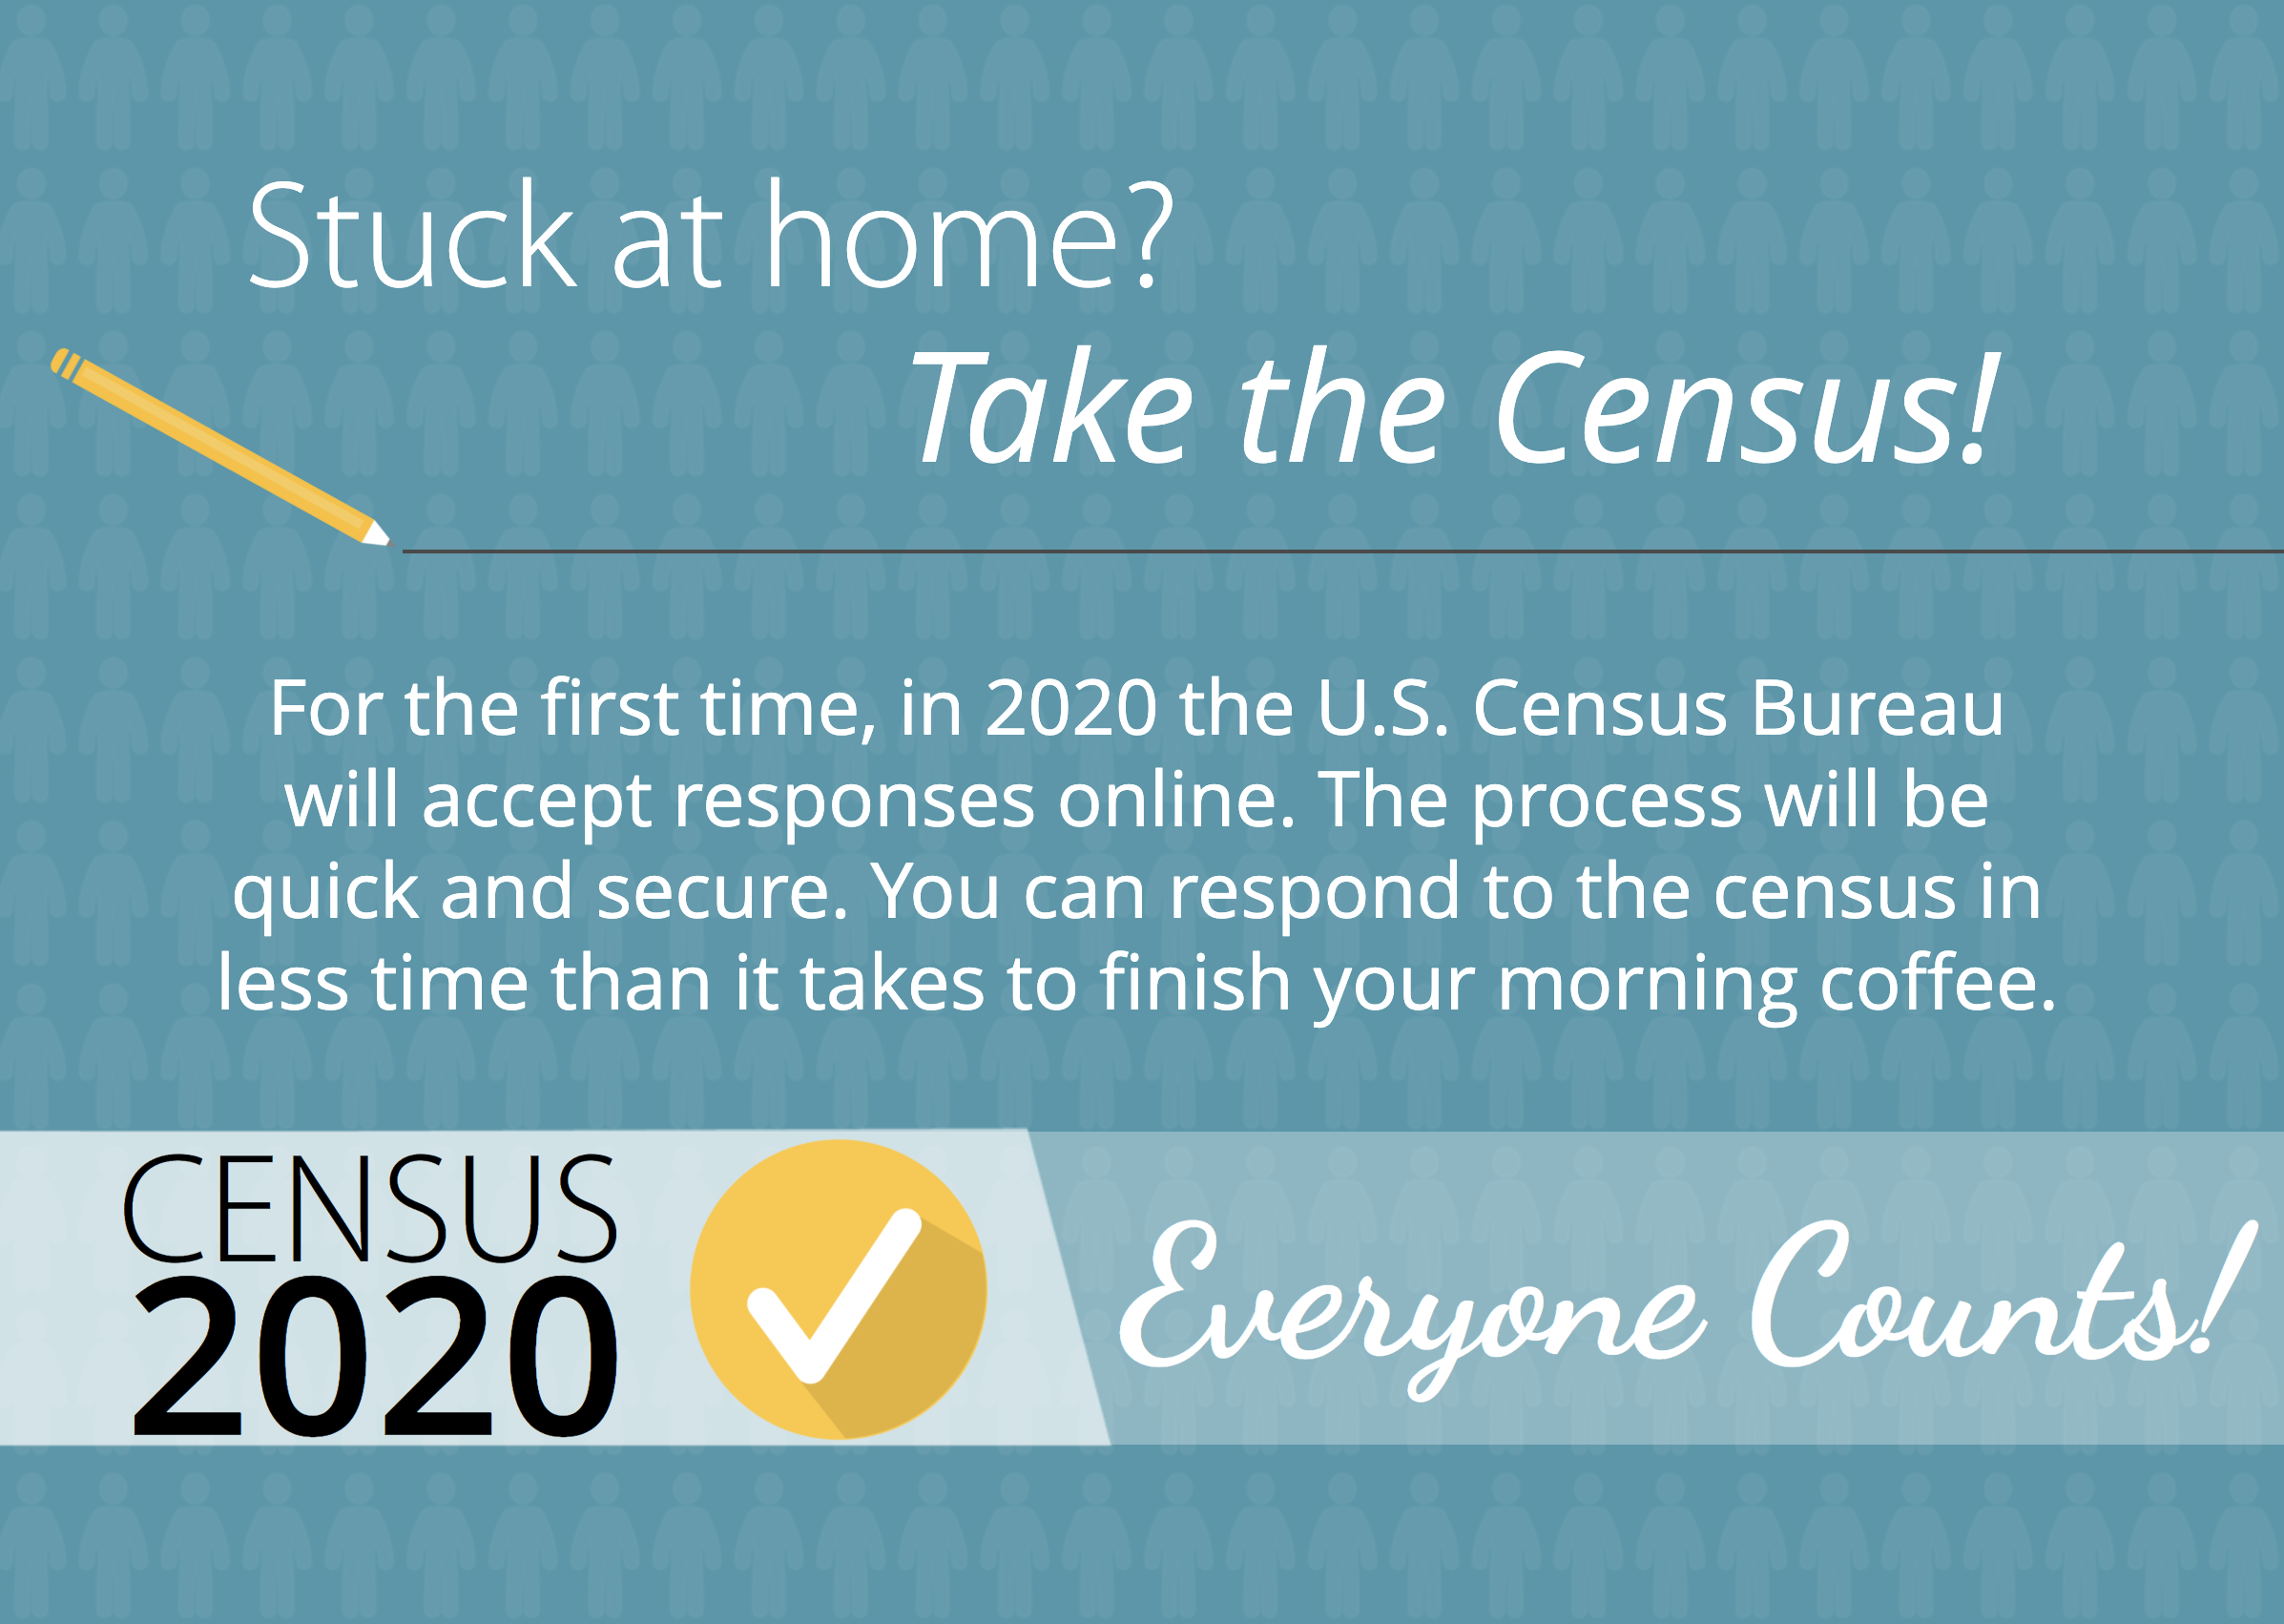 Stuck at home? Take the Census!